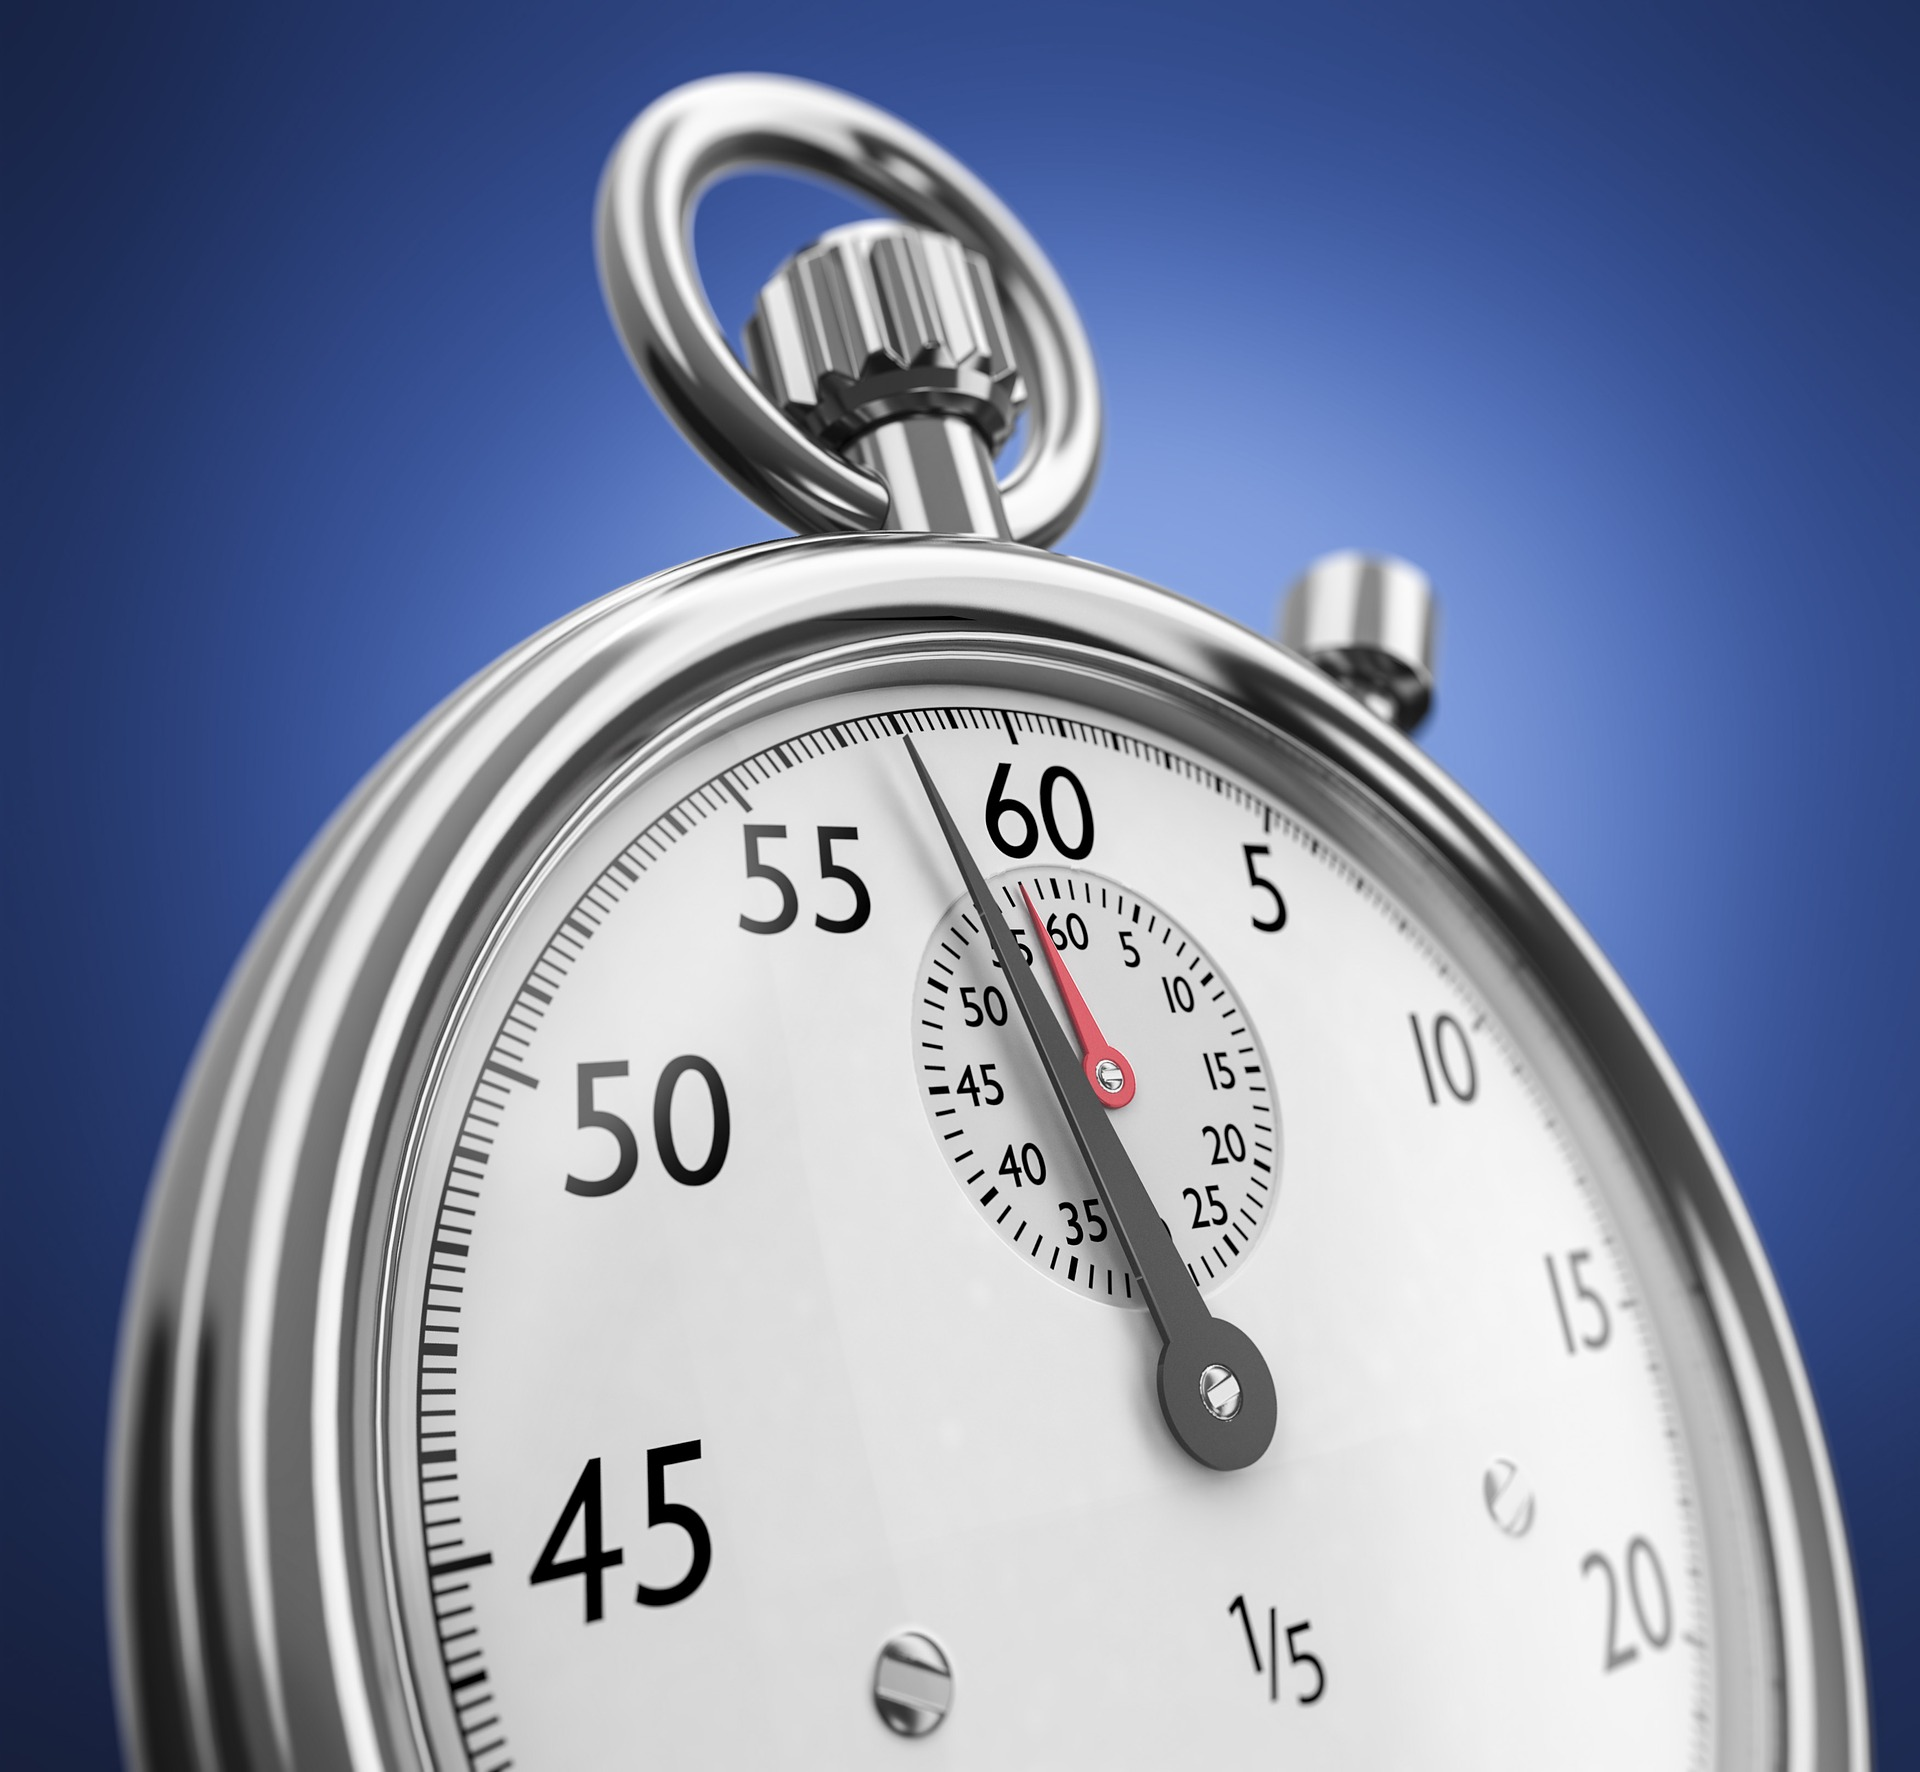 Excel Convert Seconds To Minutes And Seconds Stopwatch